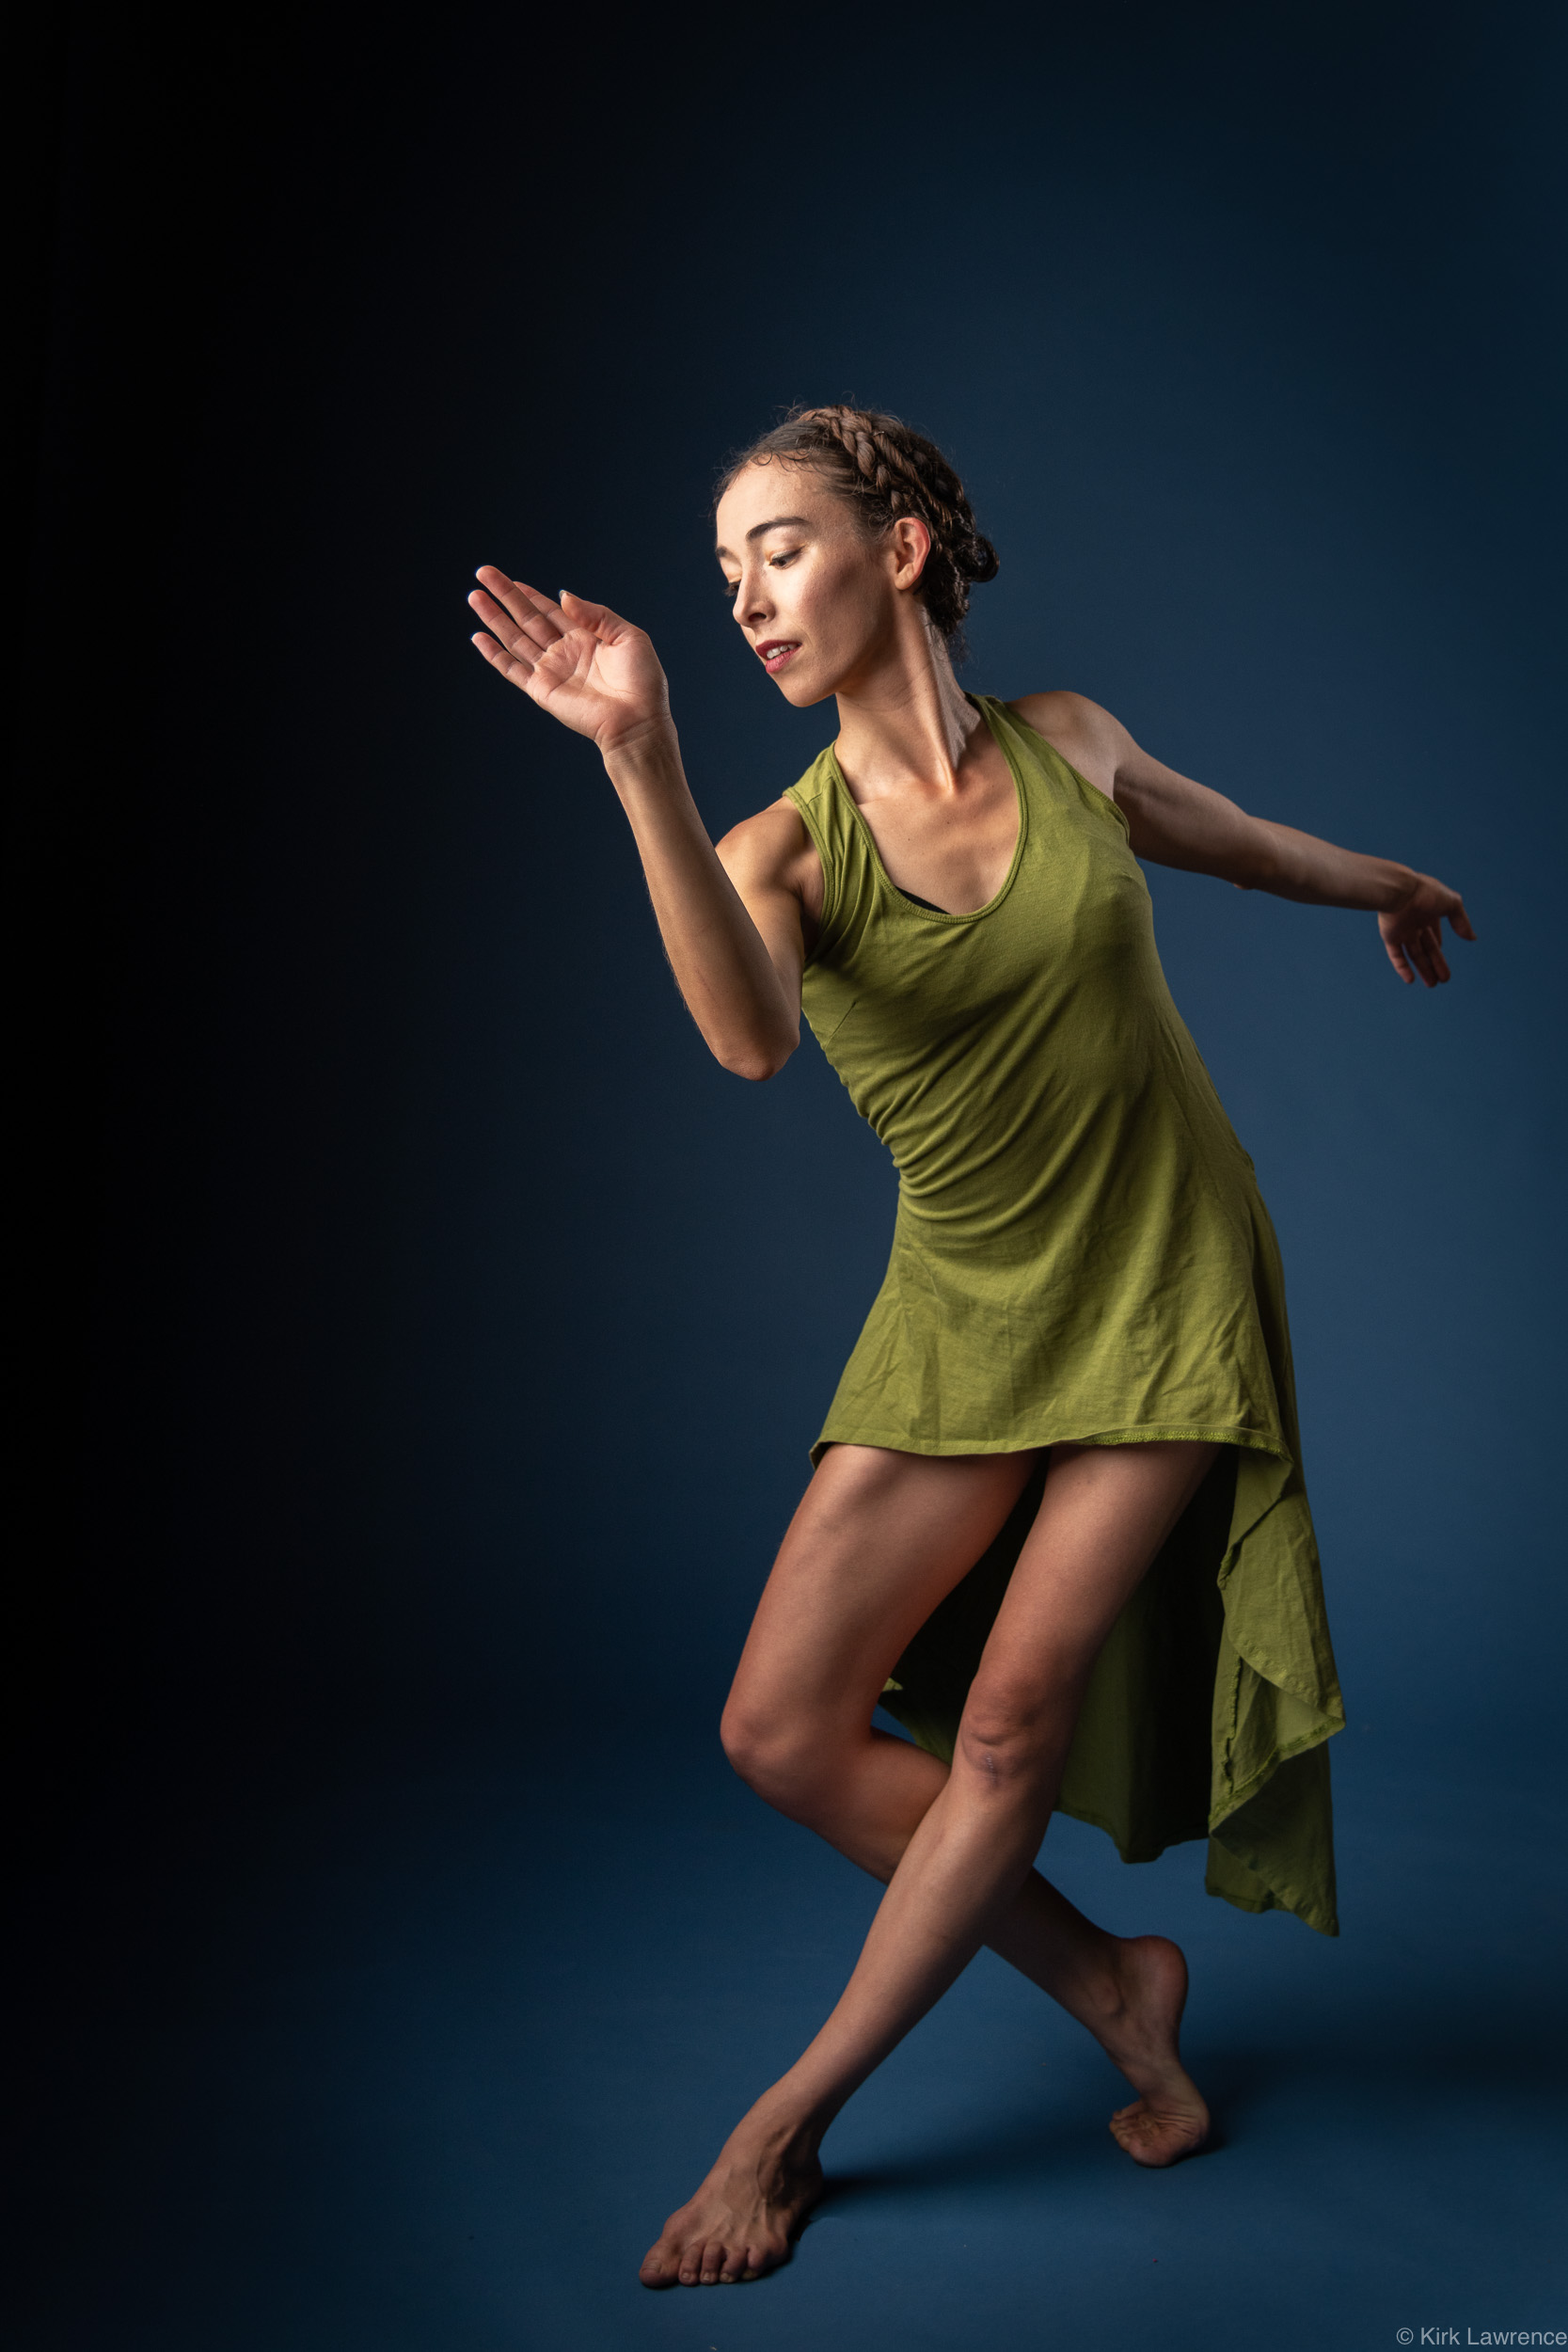 modern_dancer_green_dress_posing.jpg